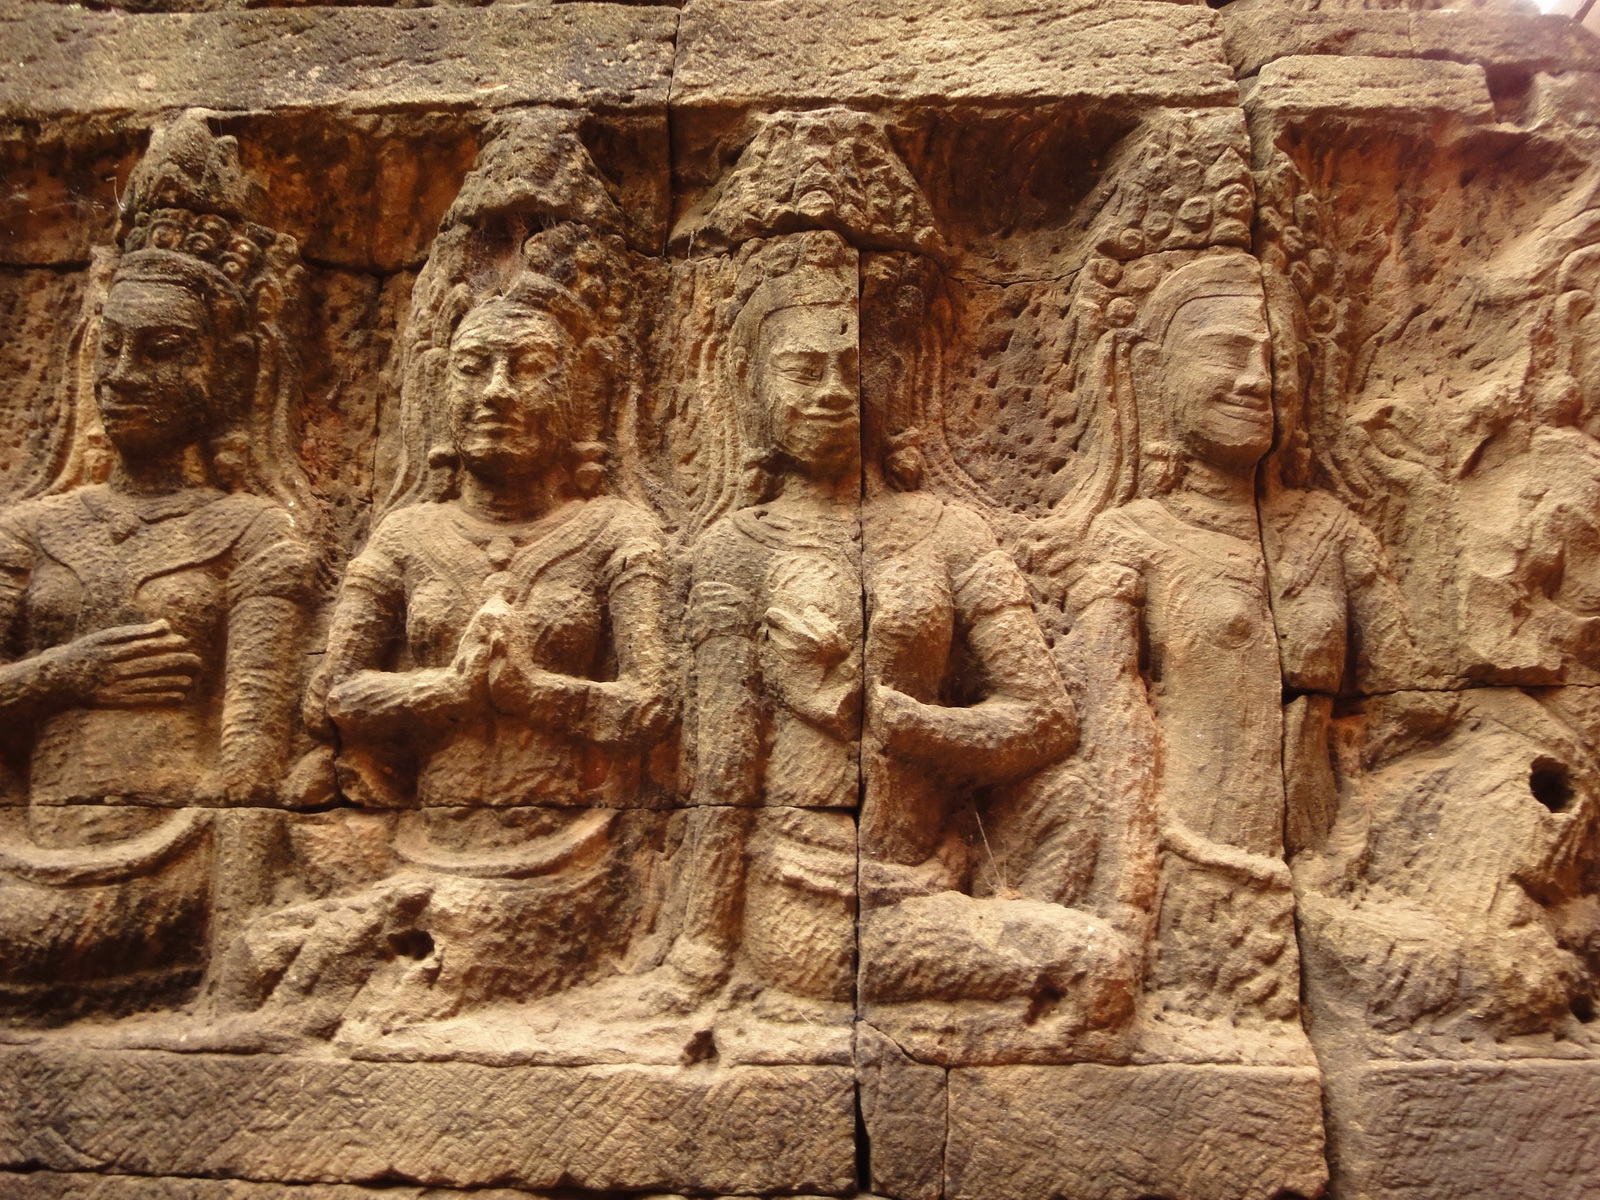 Leper King Terrace hidden wall underworld Nagas and deities 117